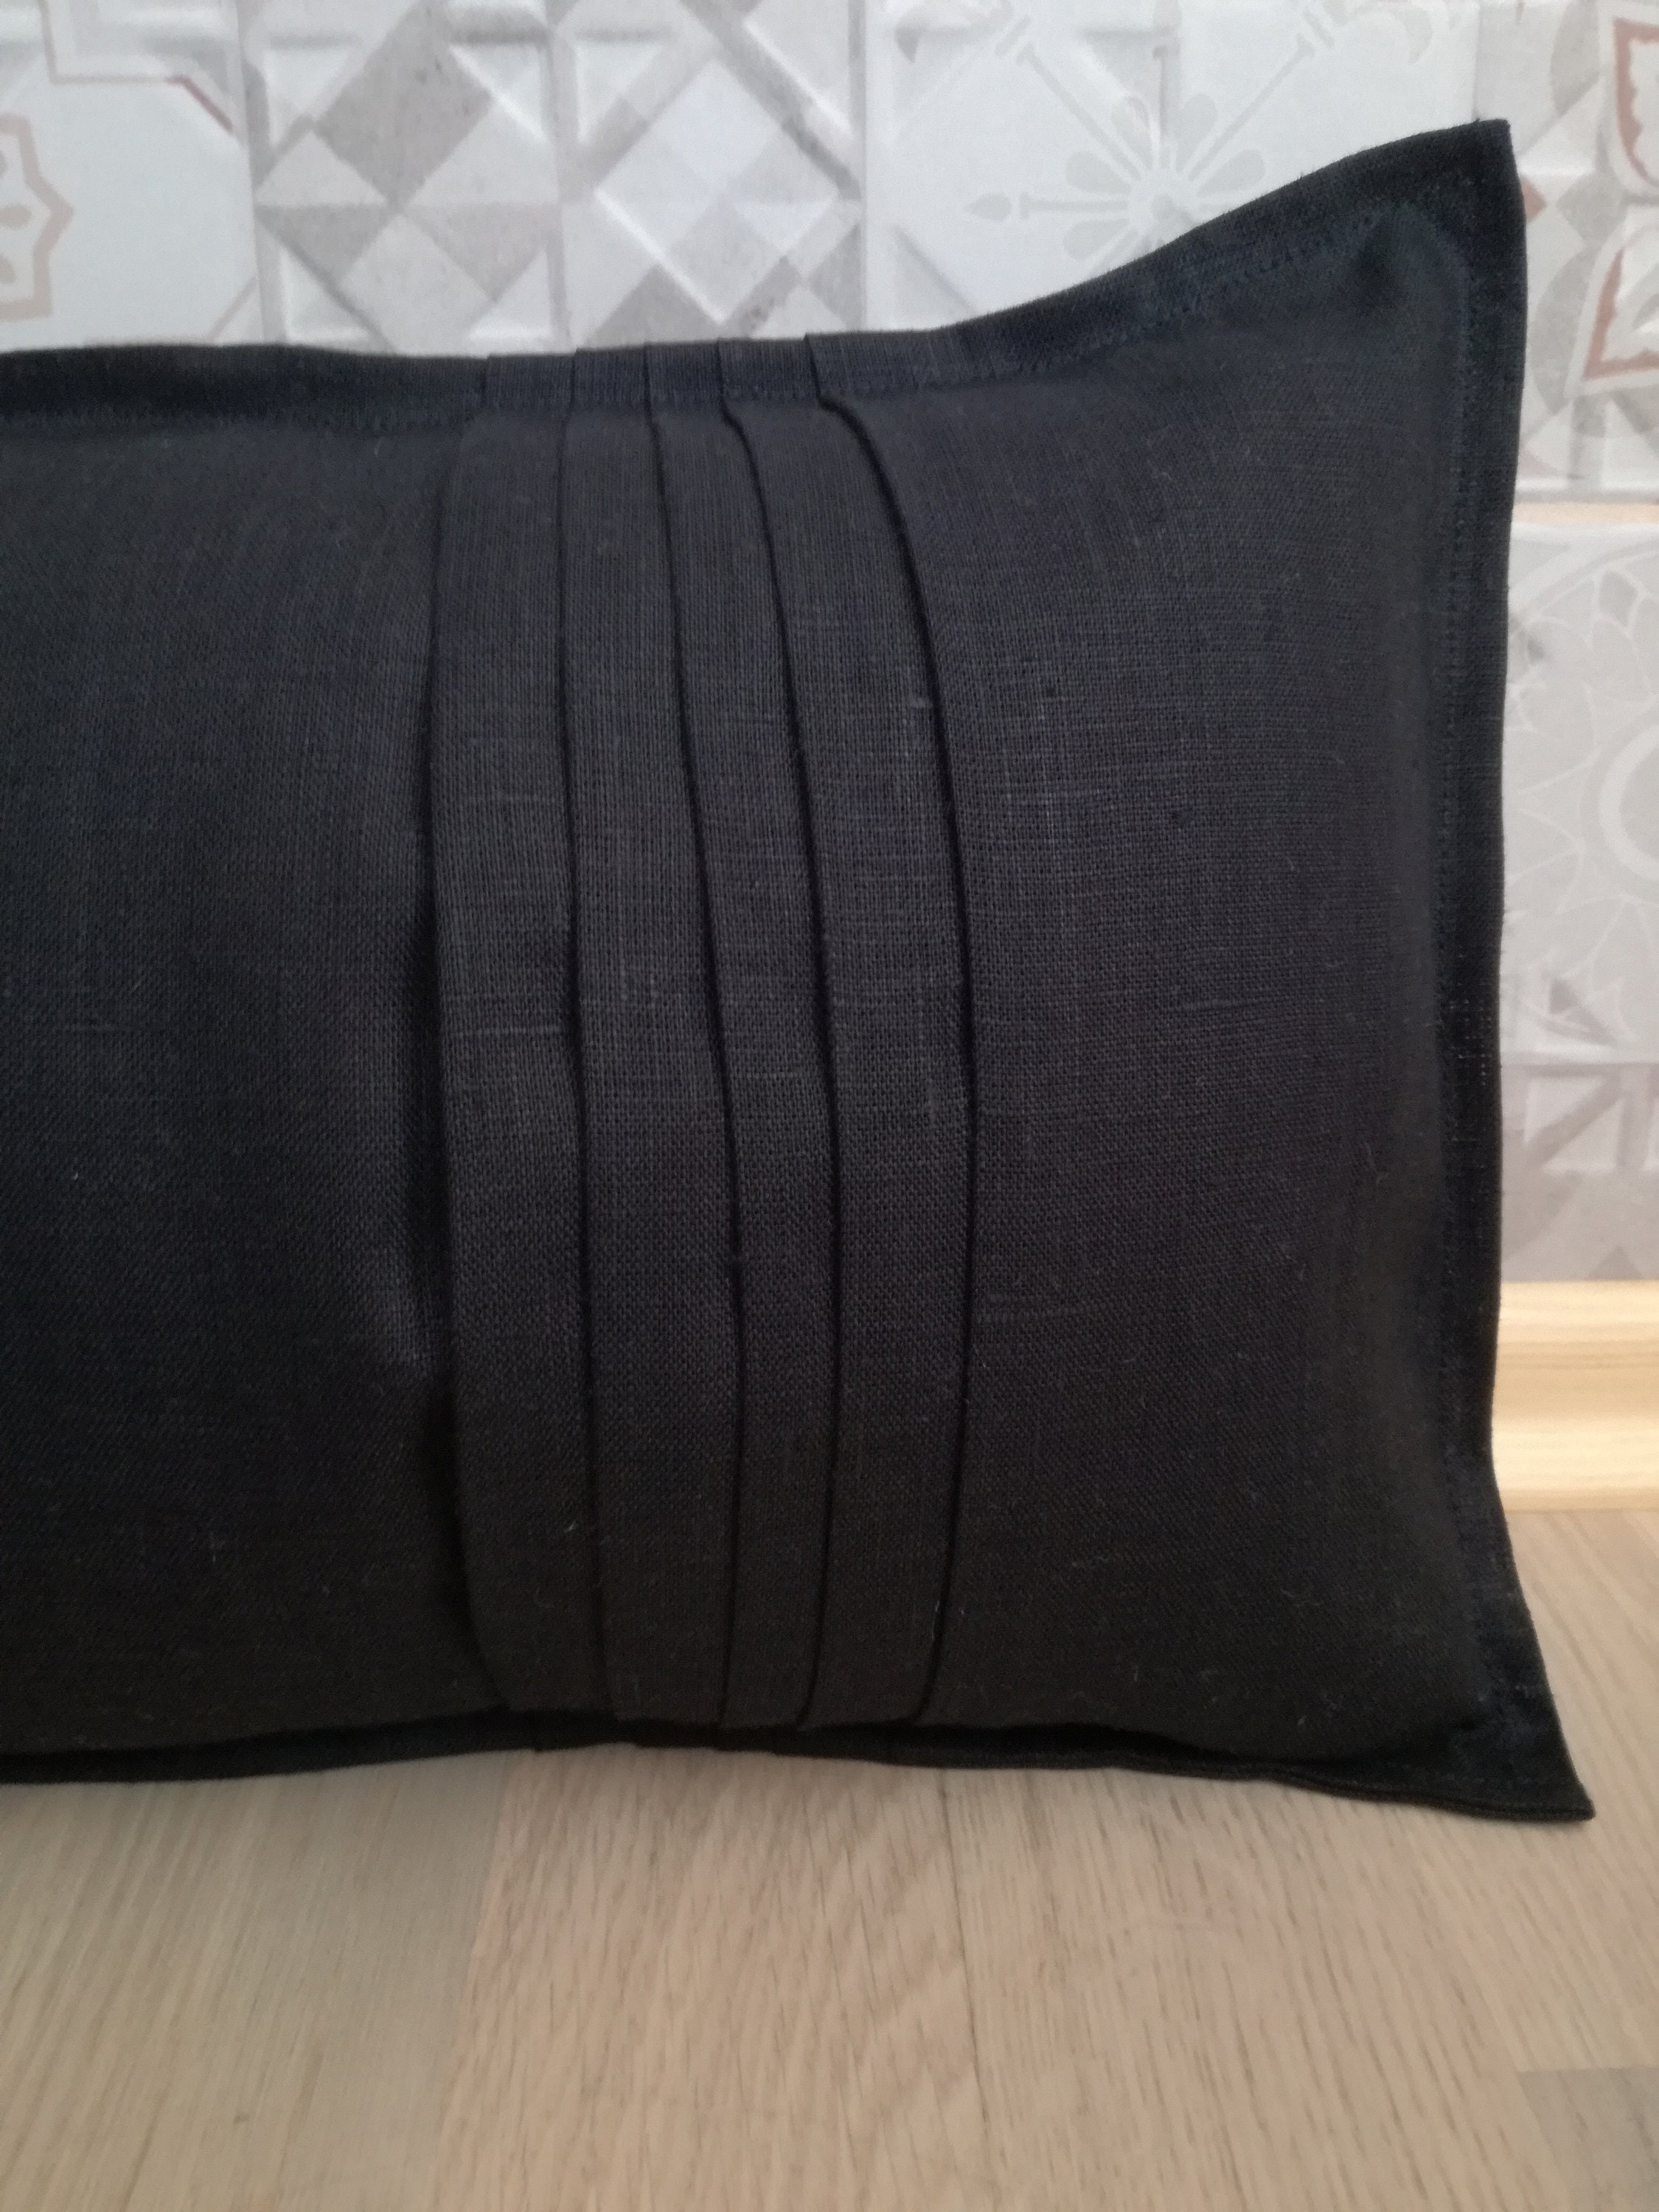 Fantastic Black Pleated Lumbar Pillow Bench Cushion Linen Pillow Caraccident5 Cool Chair Designs And Ideas Caraccident5Info